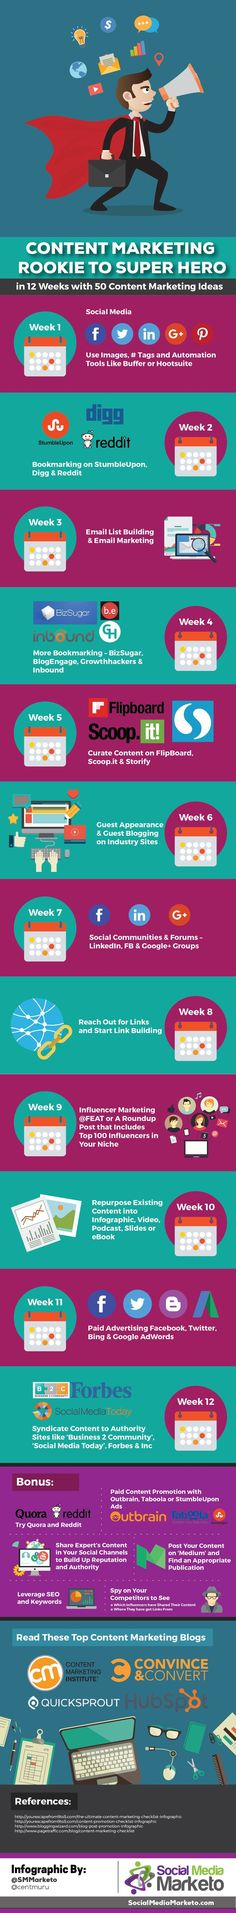 Internet Marketing for Beginners: 50 Ways to Generate Website Traffic [Infographic] AND Take this Free Full Lenght Video Training on HOW to Start an Online Business